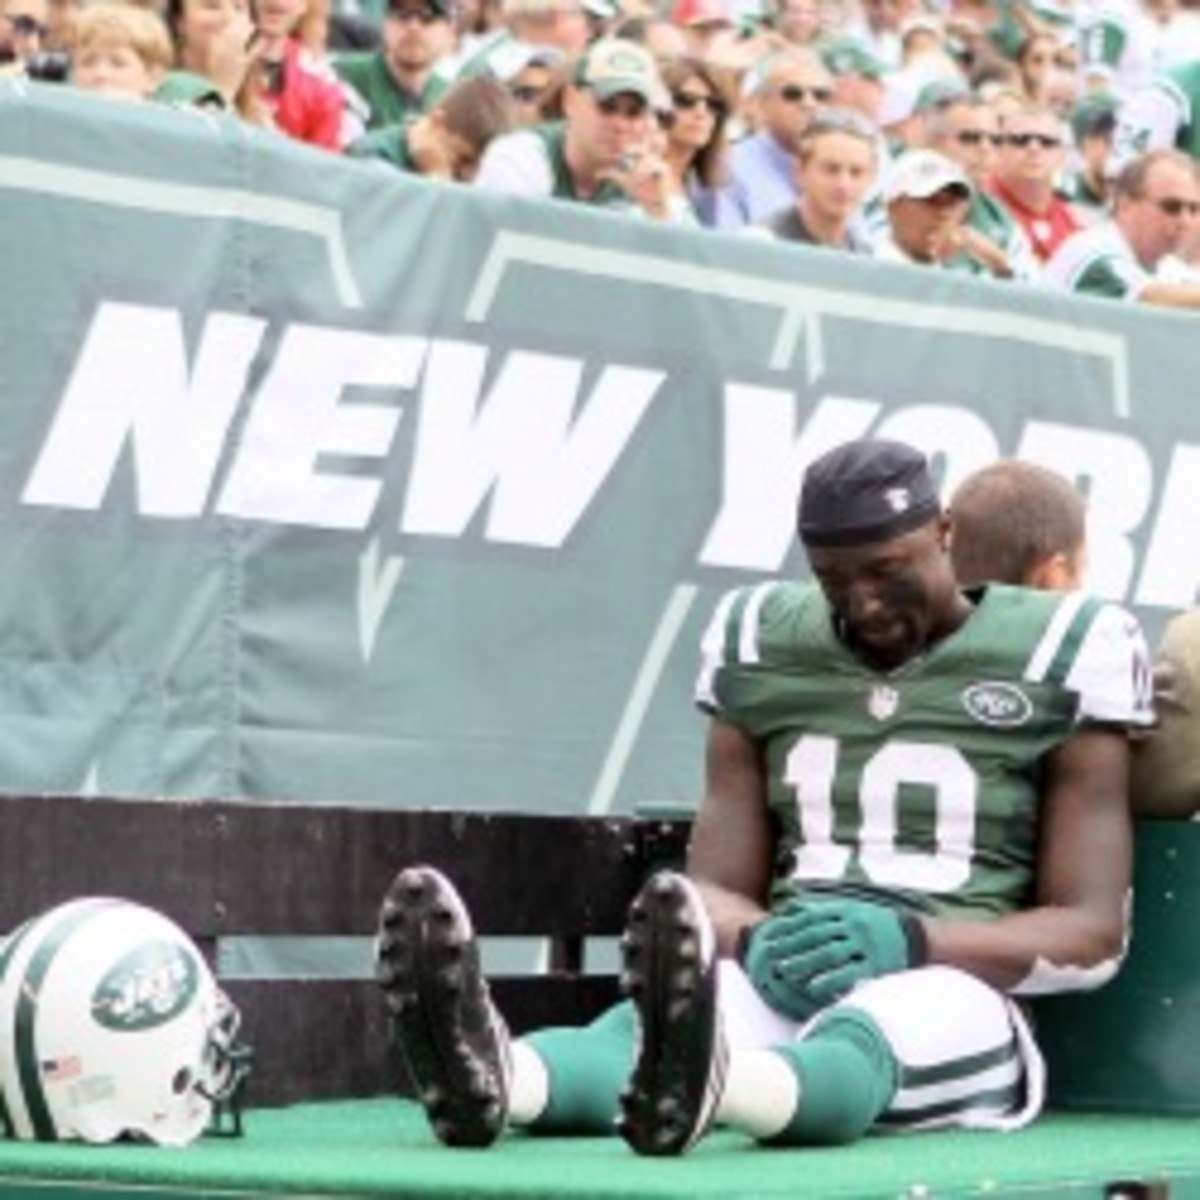 The Jets will reportedly try to restructure Santonio Holmes' contract this offseason. (Elsa/Getty Images)